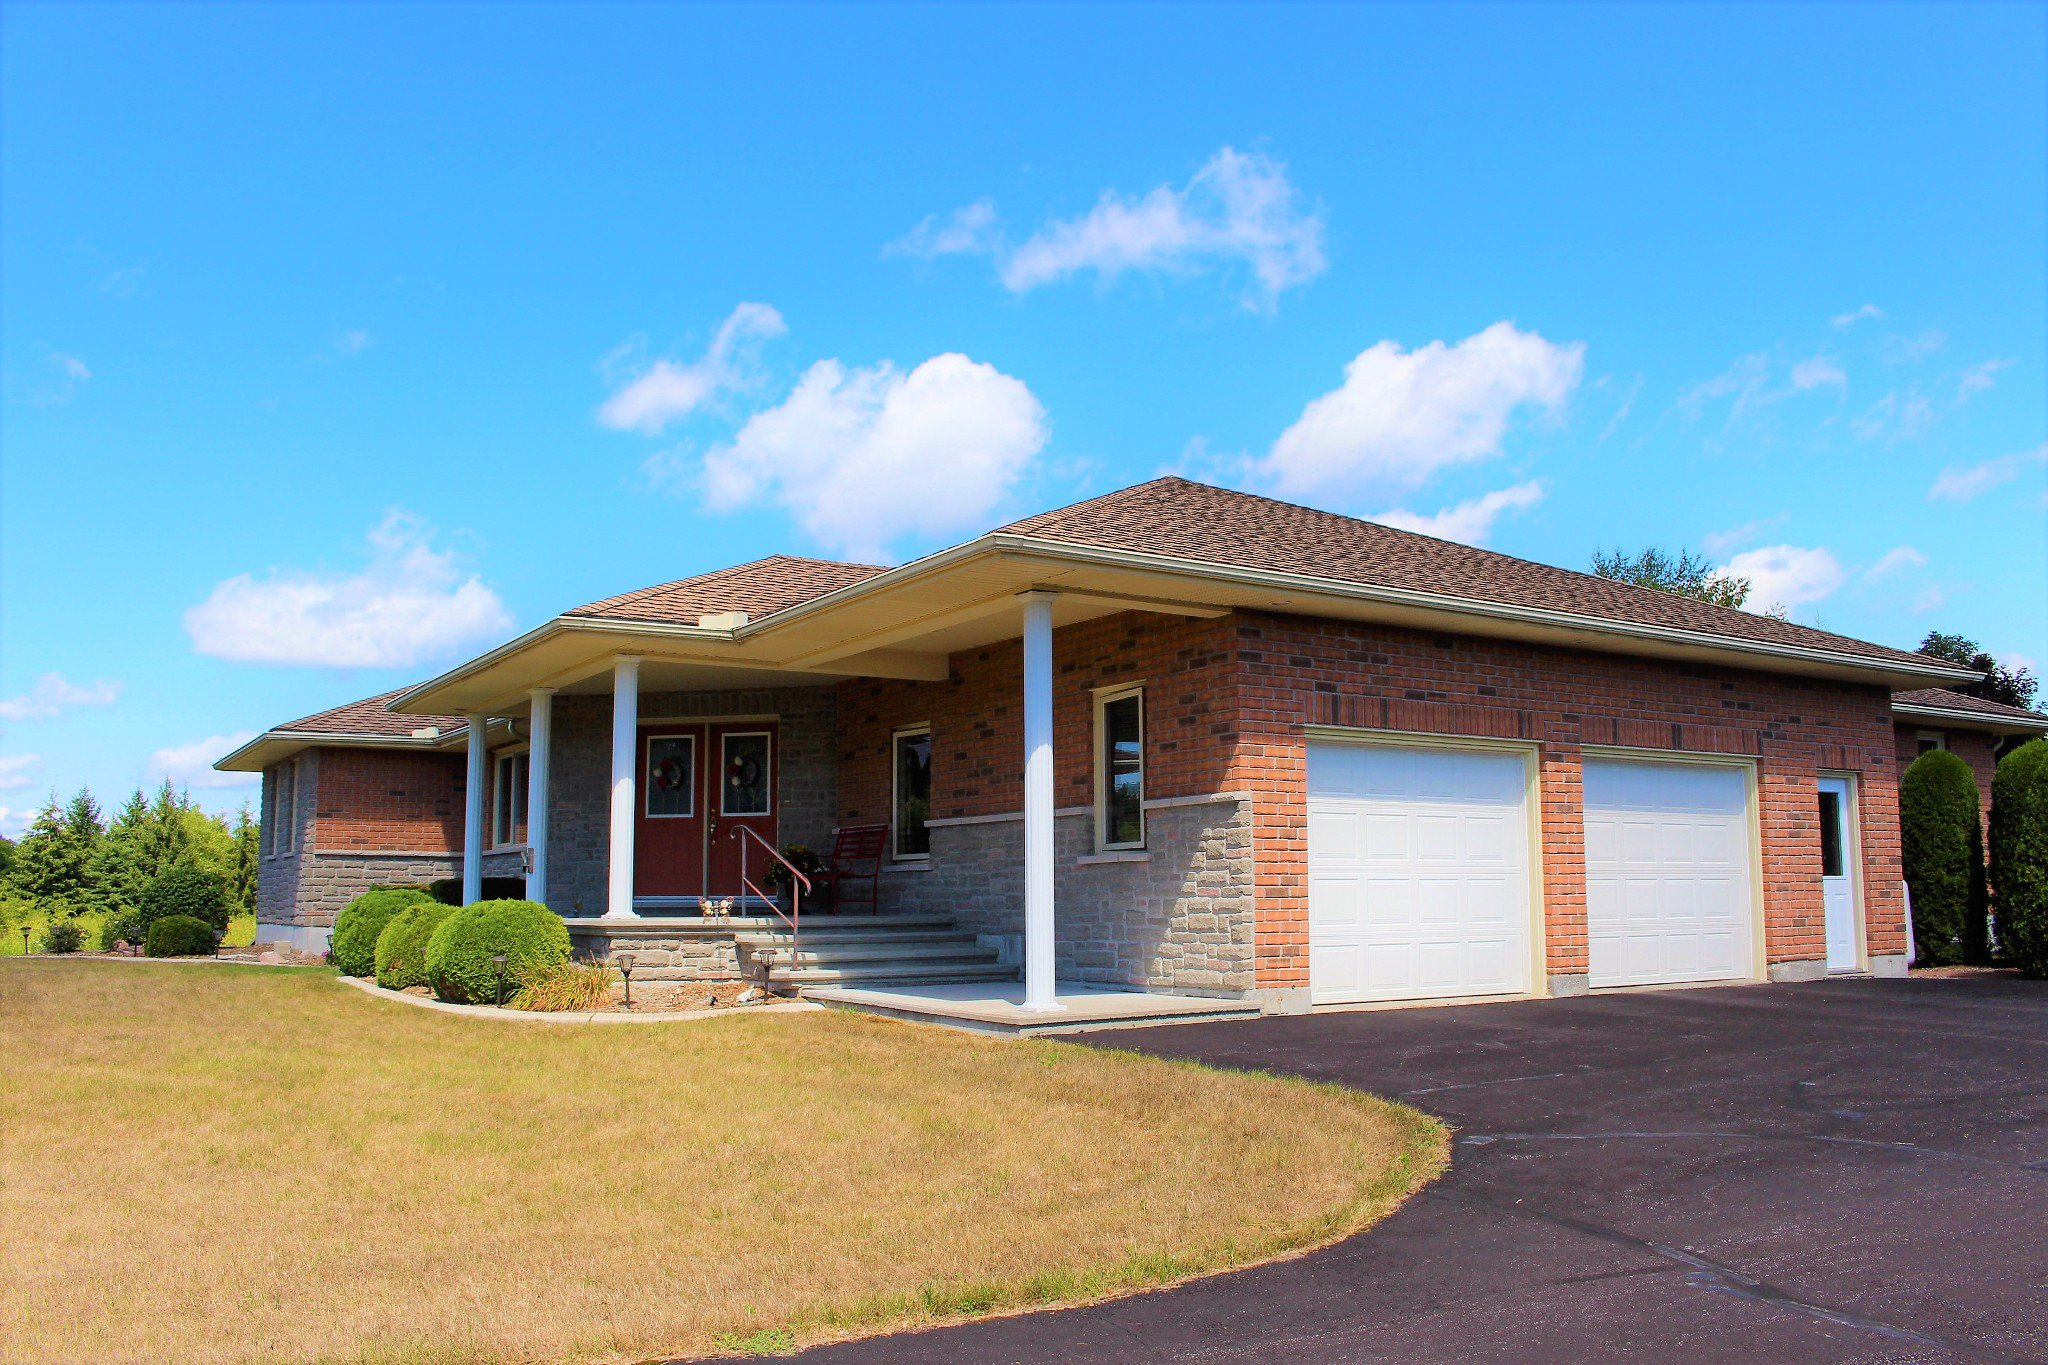 Photo 52: Photos: 159 Nawautin Drive in Grafton: Residential Detached for sale : MLS®# 40012652